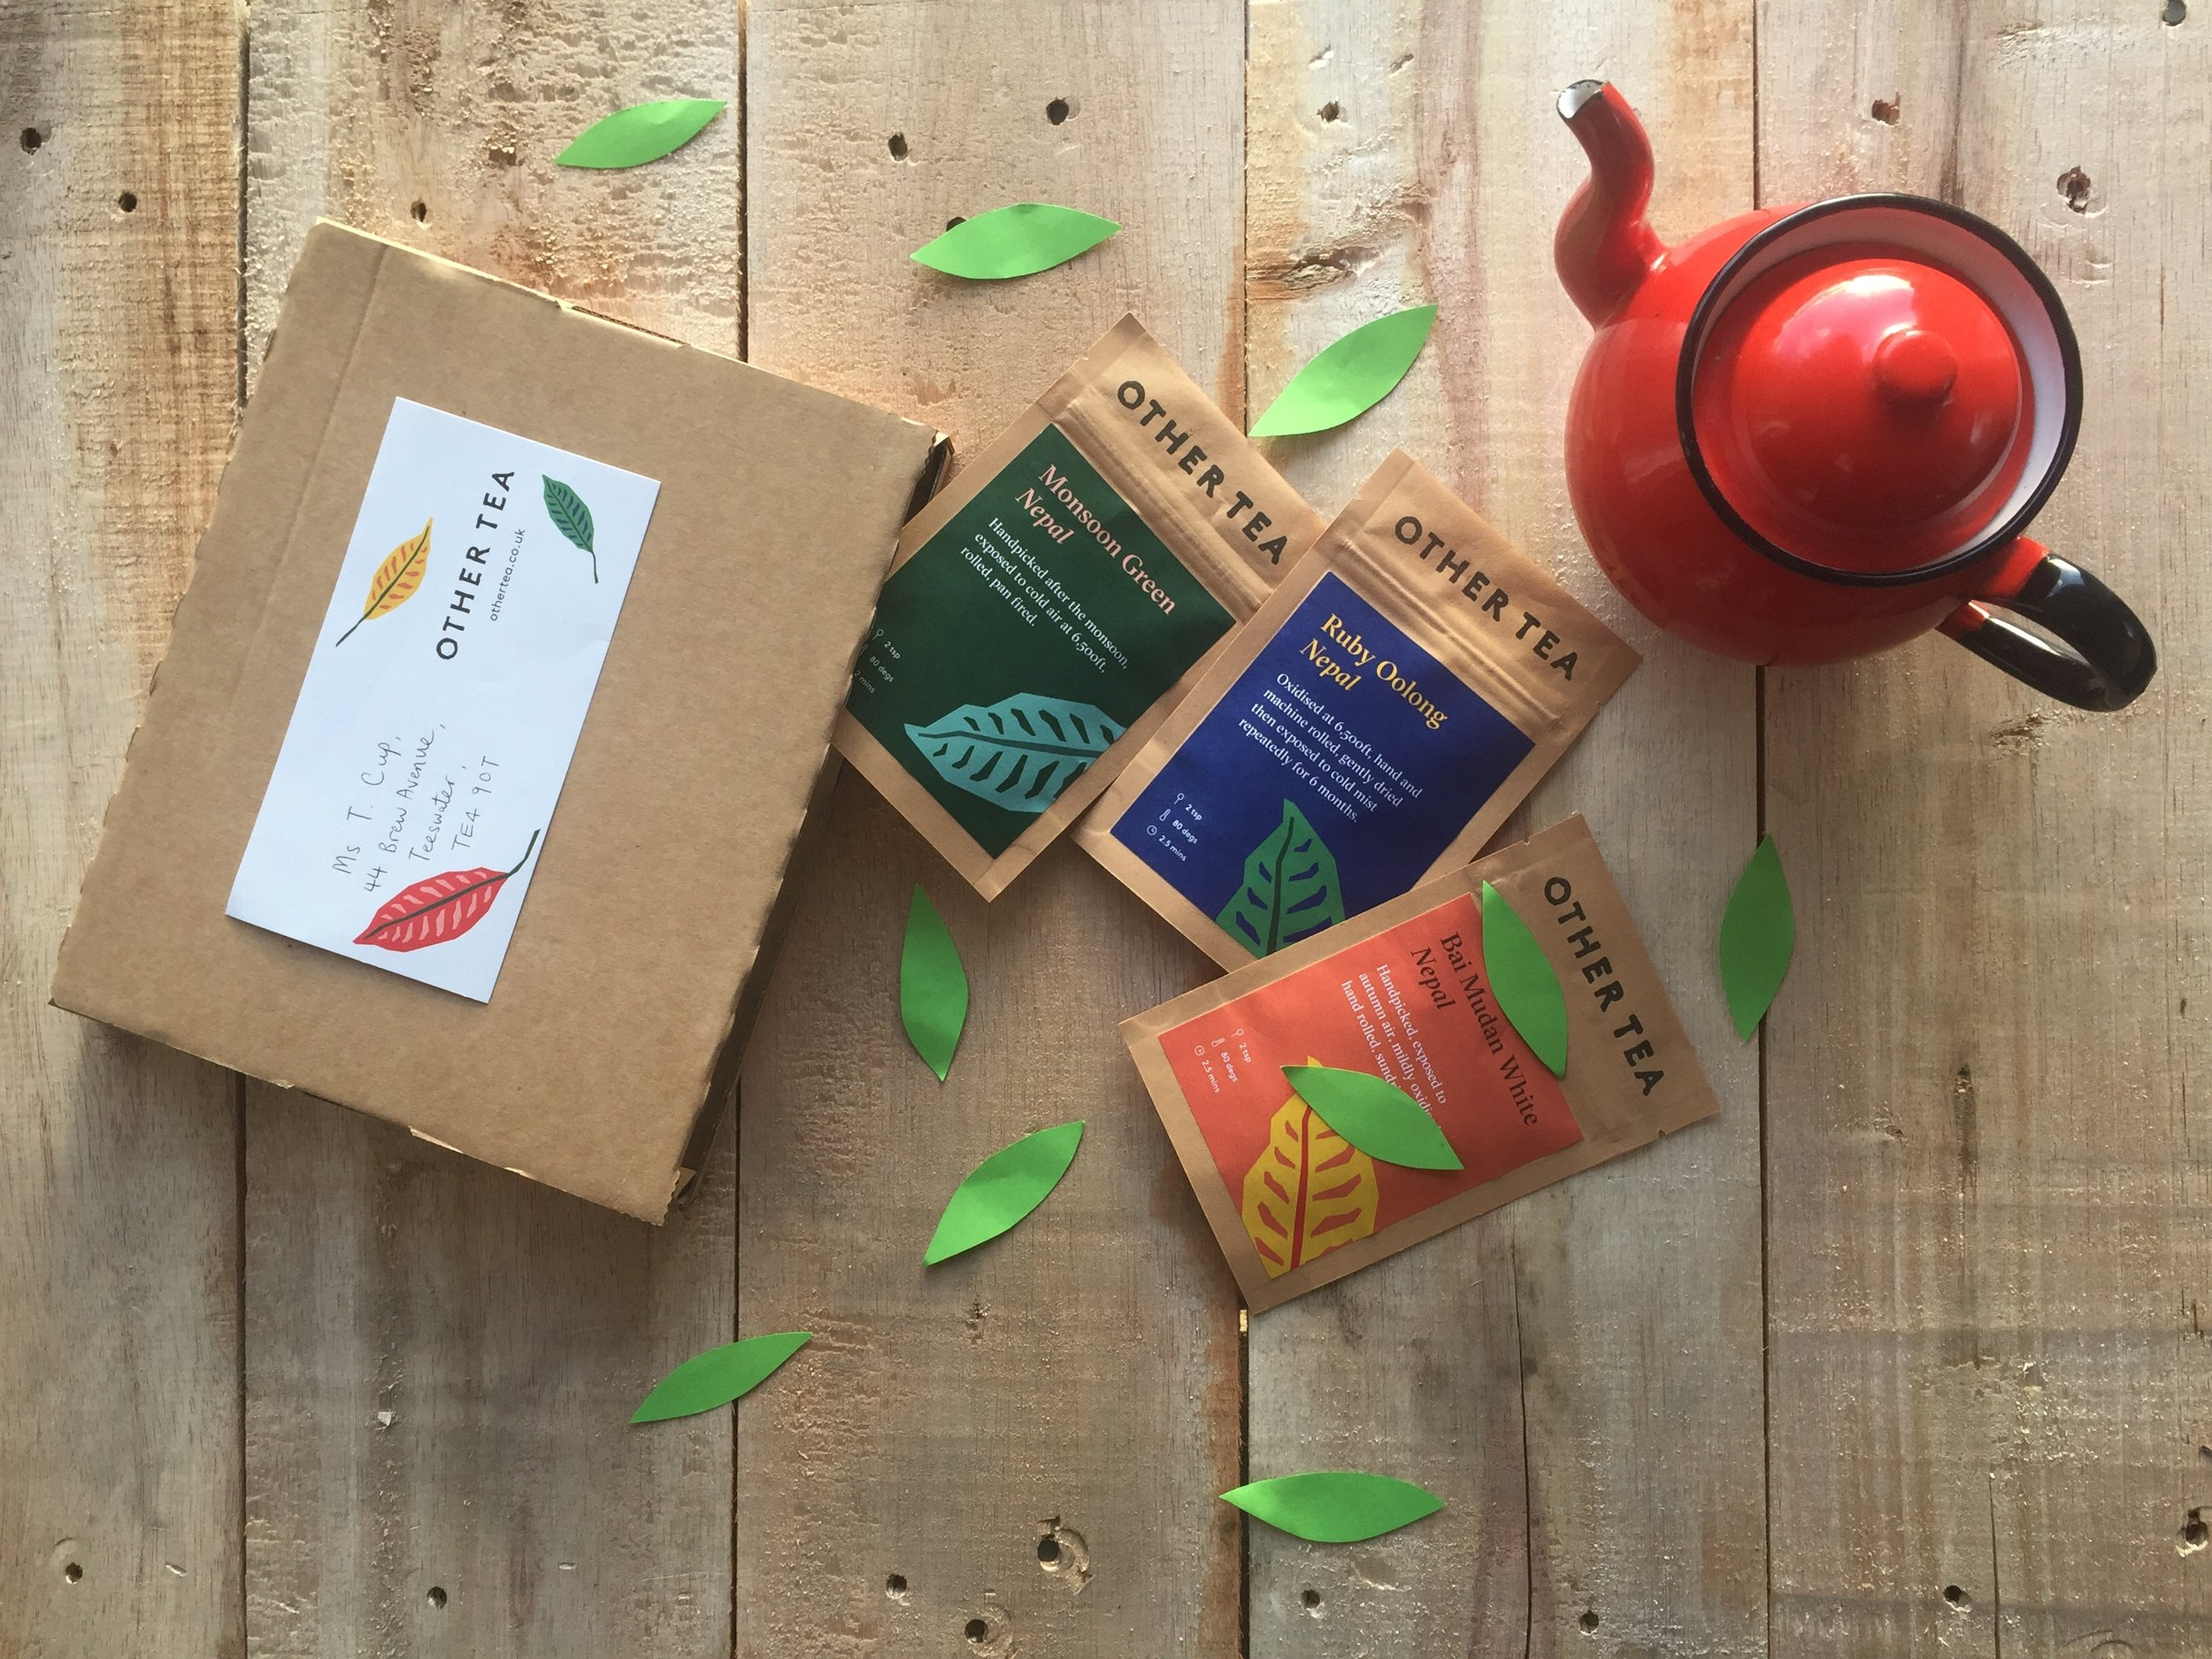 Other Tea - green tea subscription box delivery